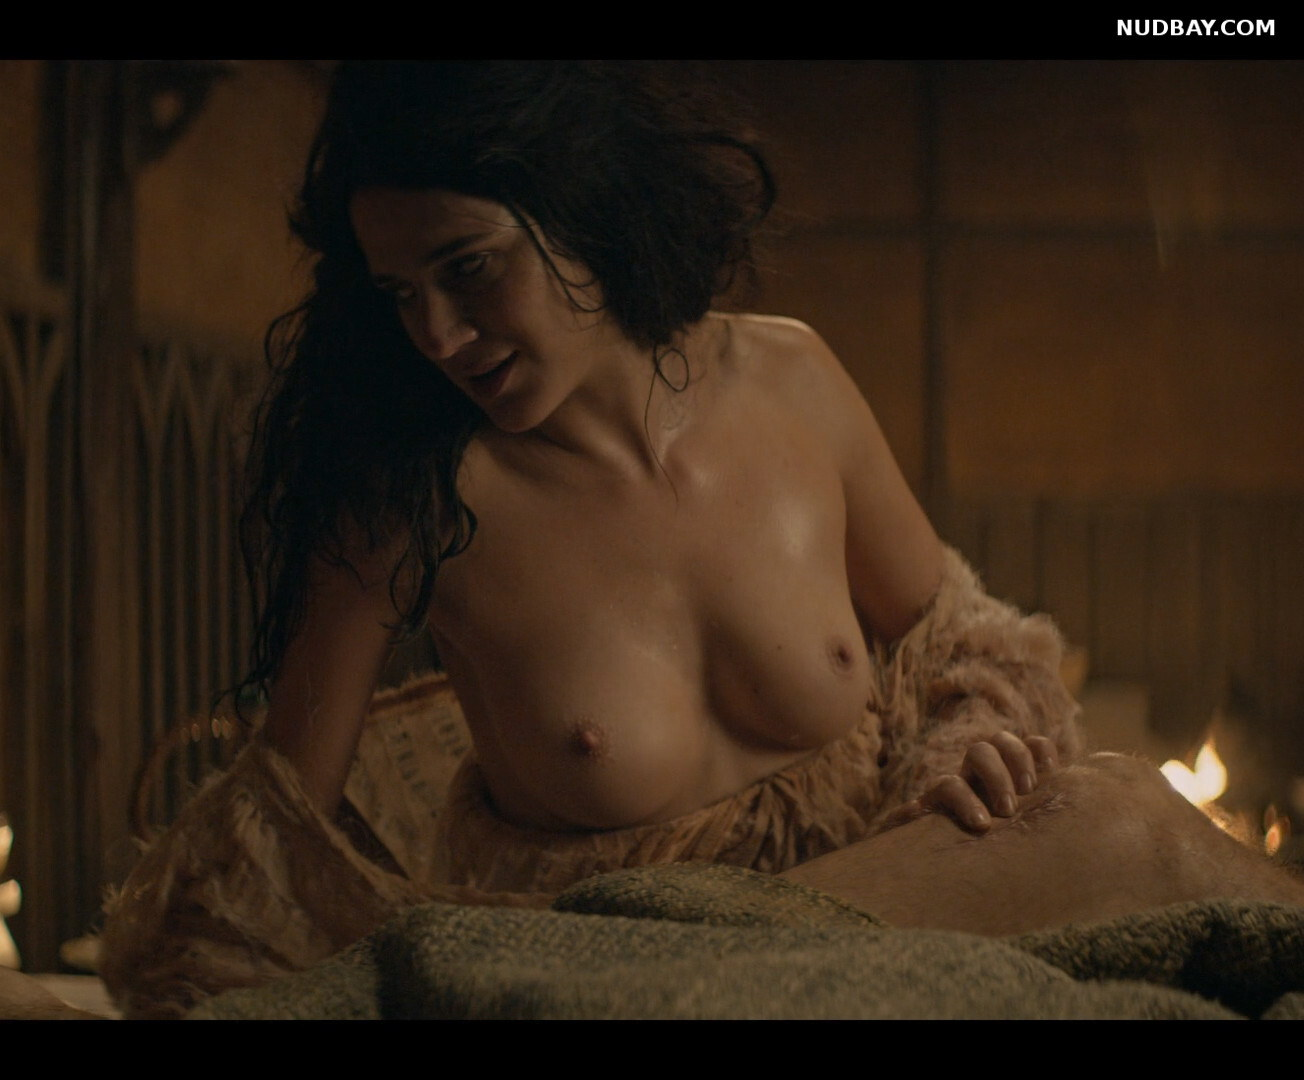 Imogen Daines nude boobs in The Witcher S01 (2019)